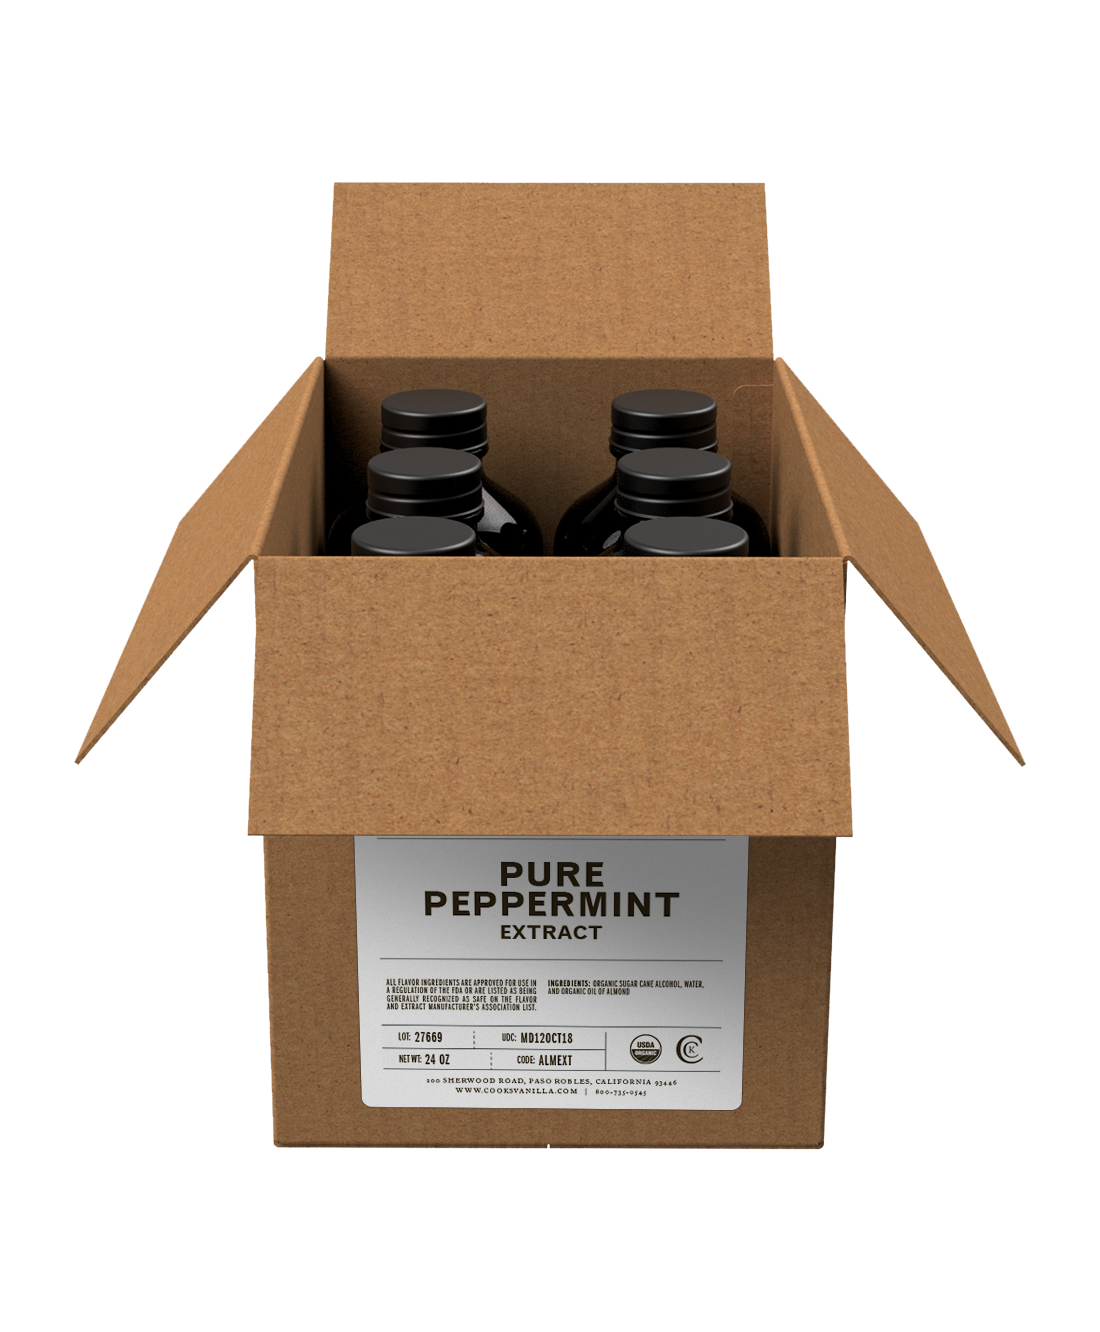 Flavoring | Peppermint Extract (Pure) | Packs and Cases